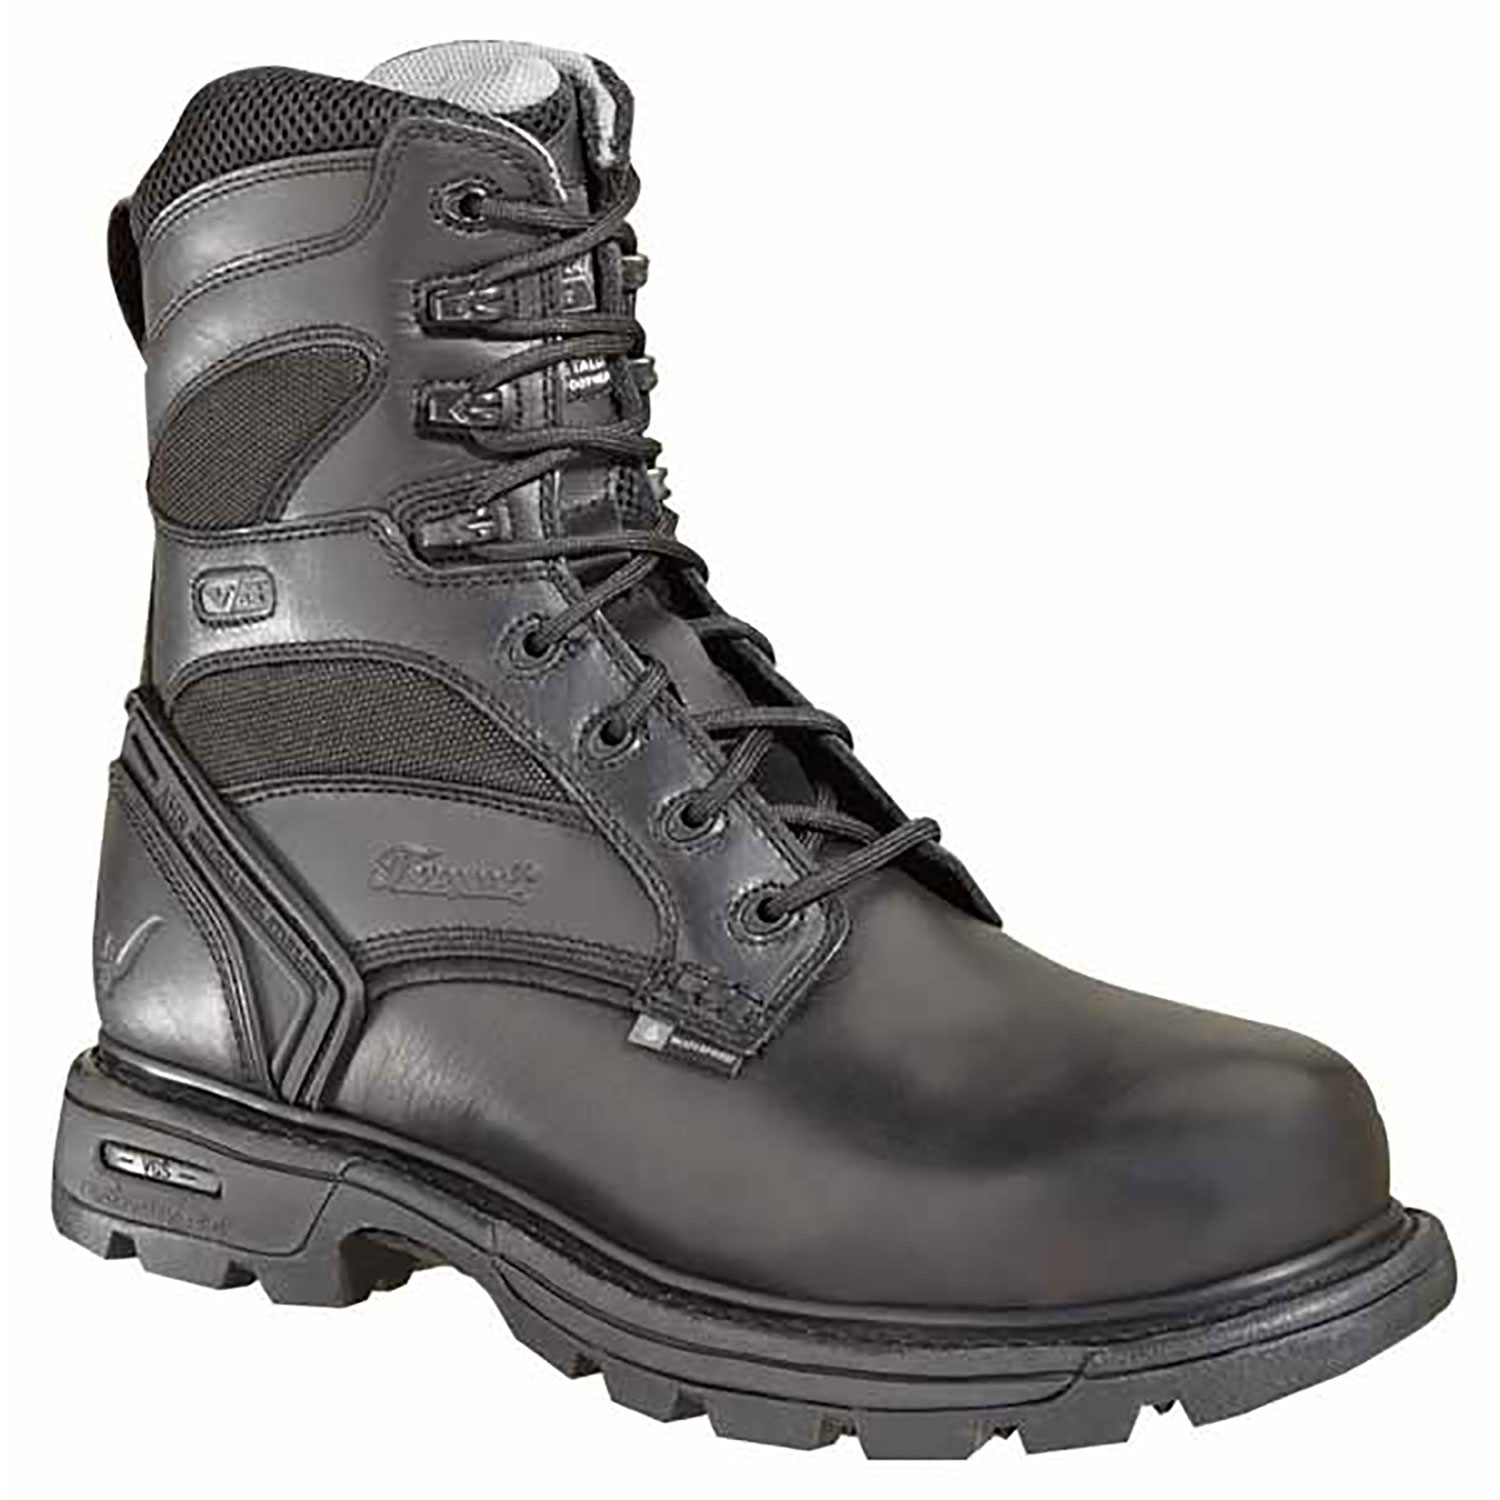 Thorogood 8-inch Waterproof Insulated Duty Boot